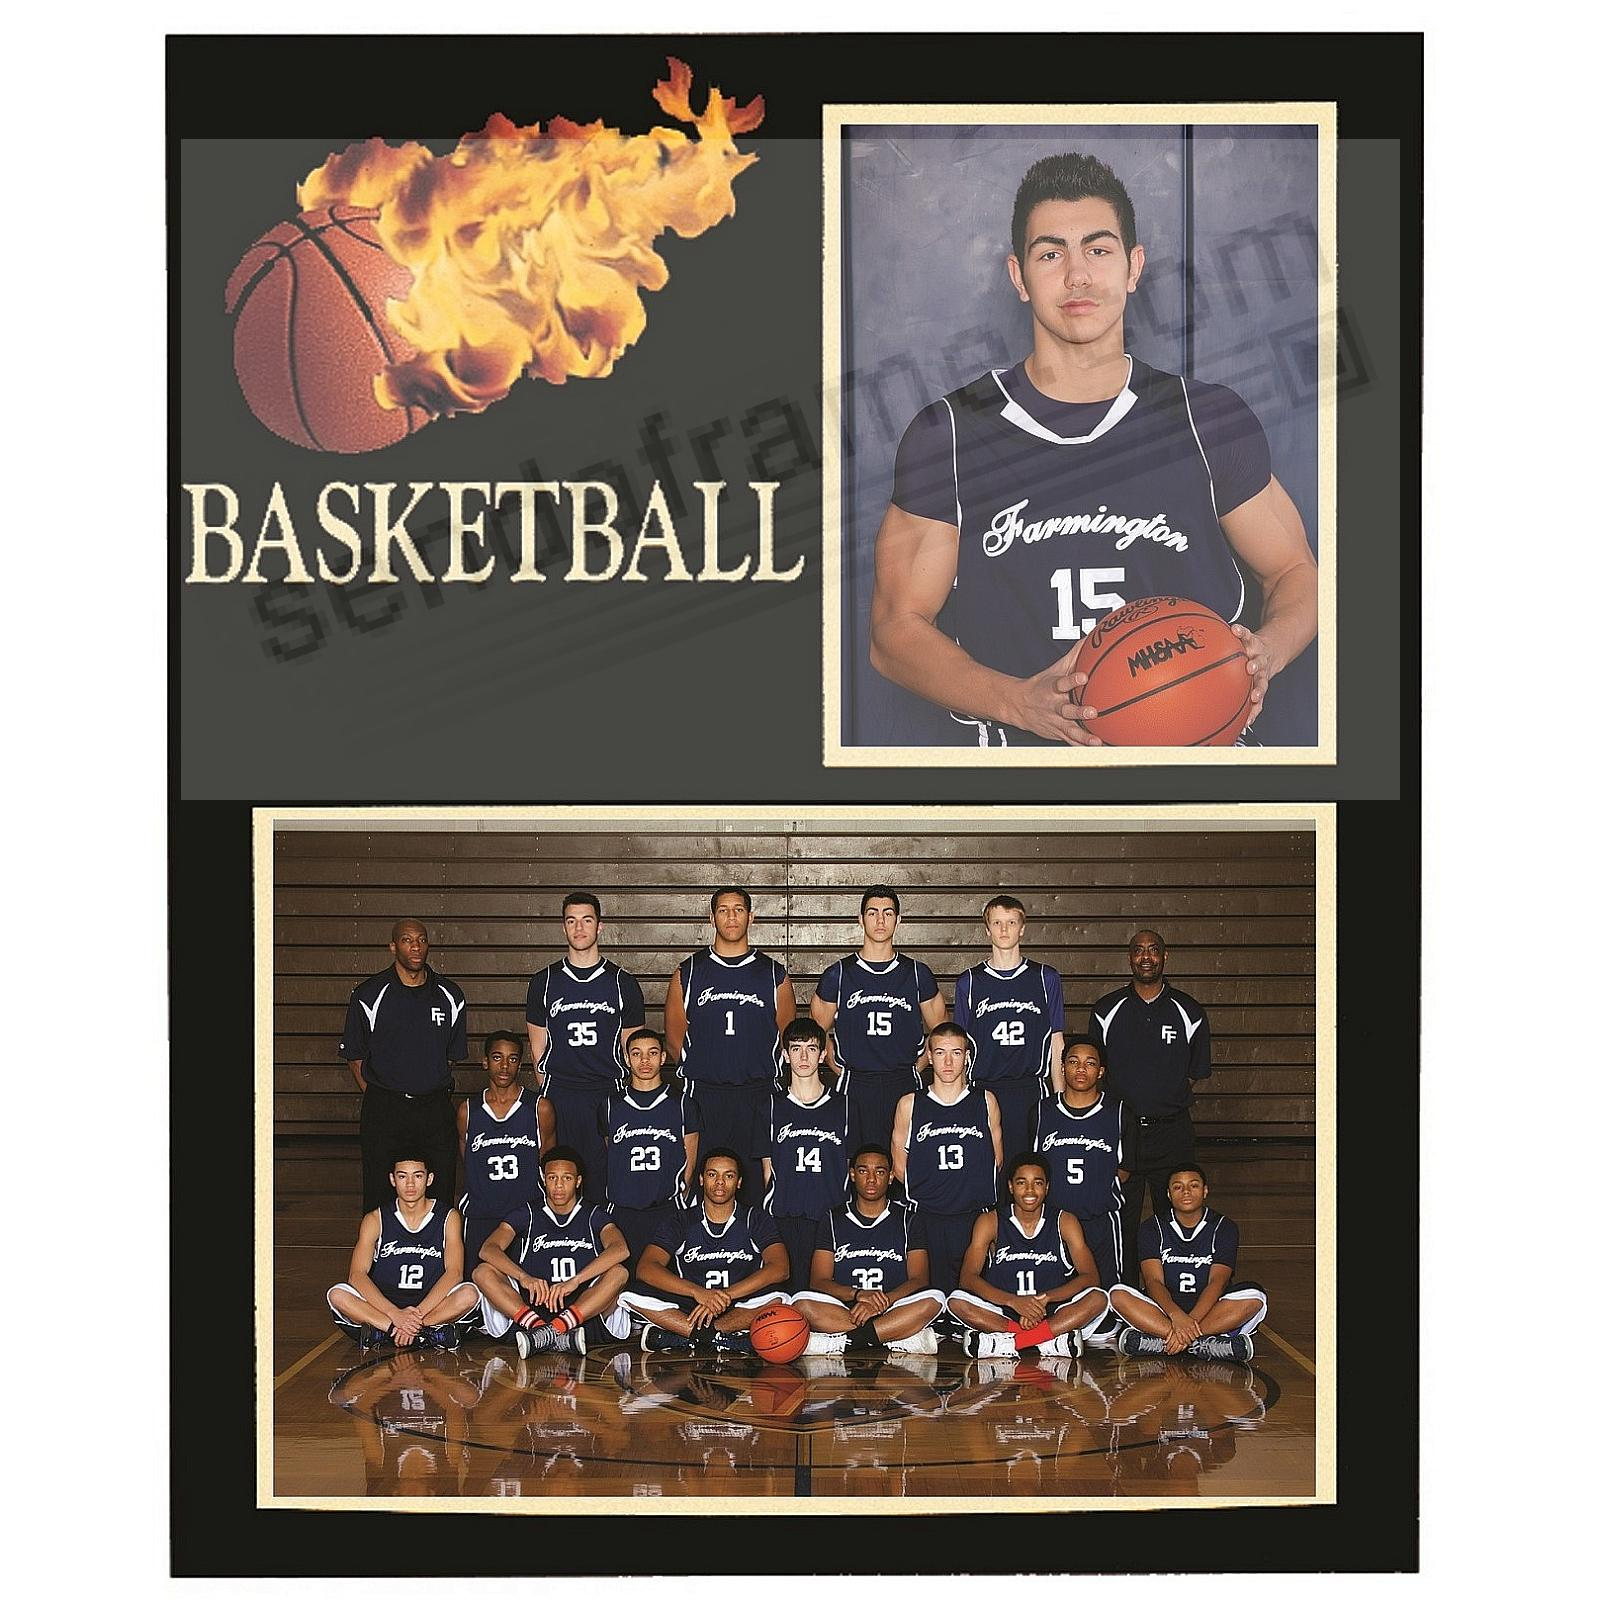 Basketball Player/Team 7x5/3½x5 SPORTSMATES cardstock double photo frame (sold in 10's)